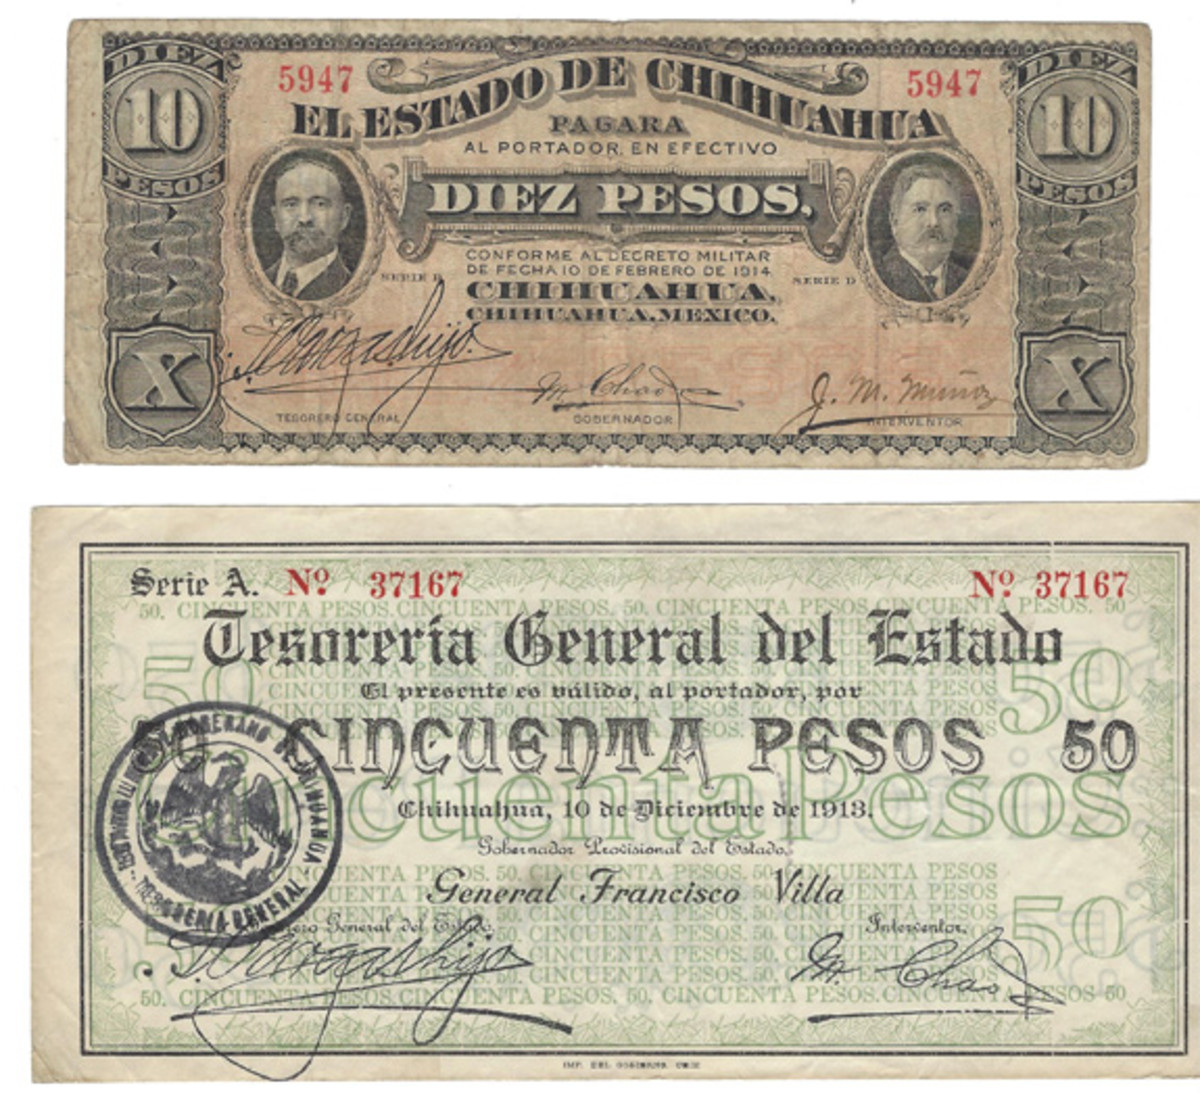 This pair of notes, each representing a distinctive Pancho Villa issue, demonstrate the almost exact similarity of the handwritten and printed signature of T. Vargas Hijo at left. It is printed on the 50-pesos note. The 10 pesos has no seal at all on its face.